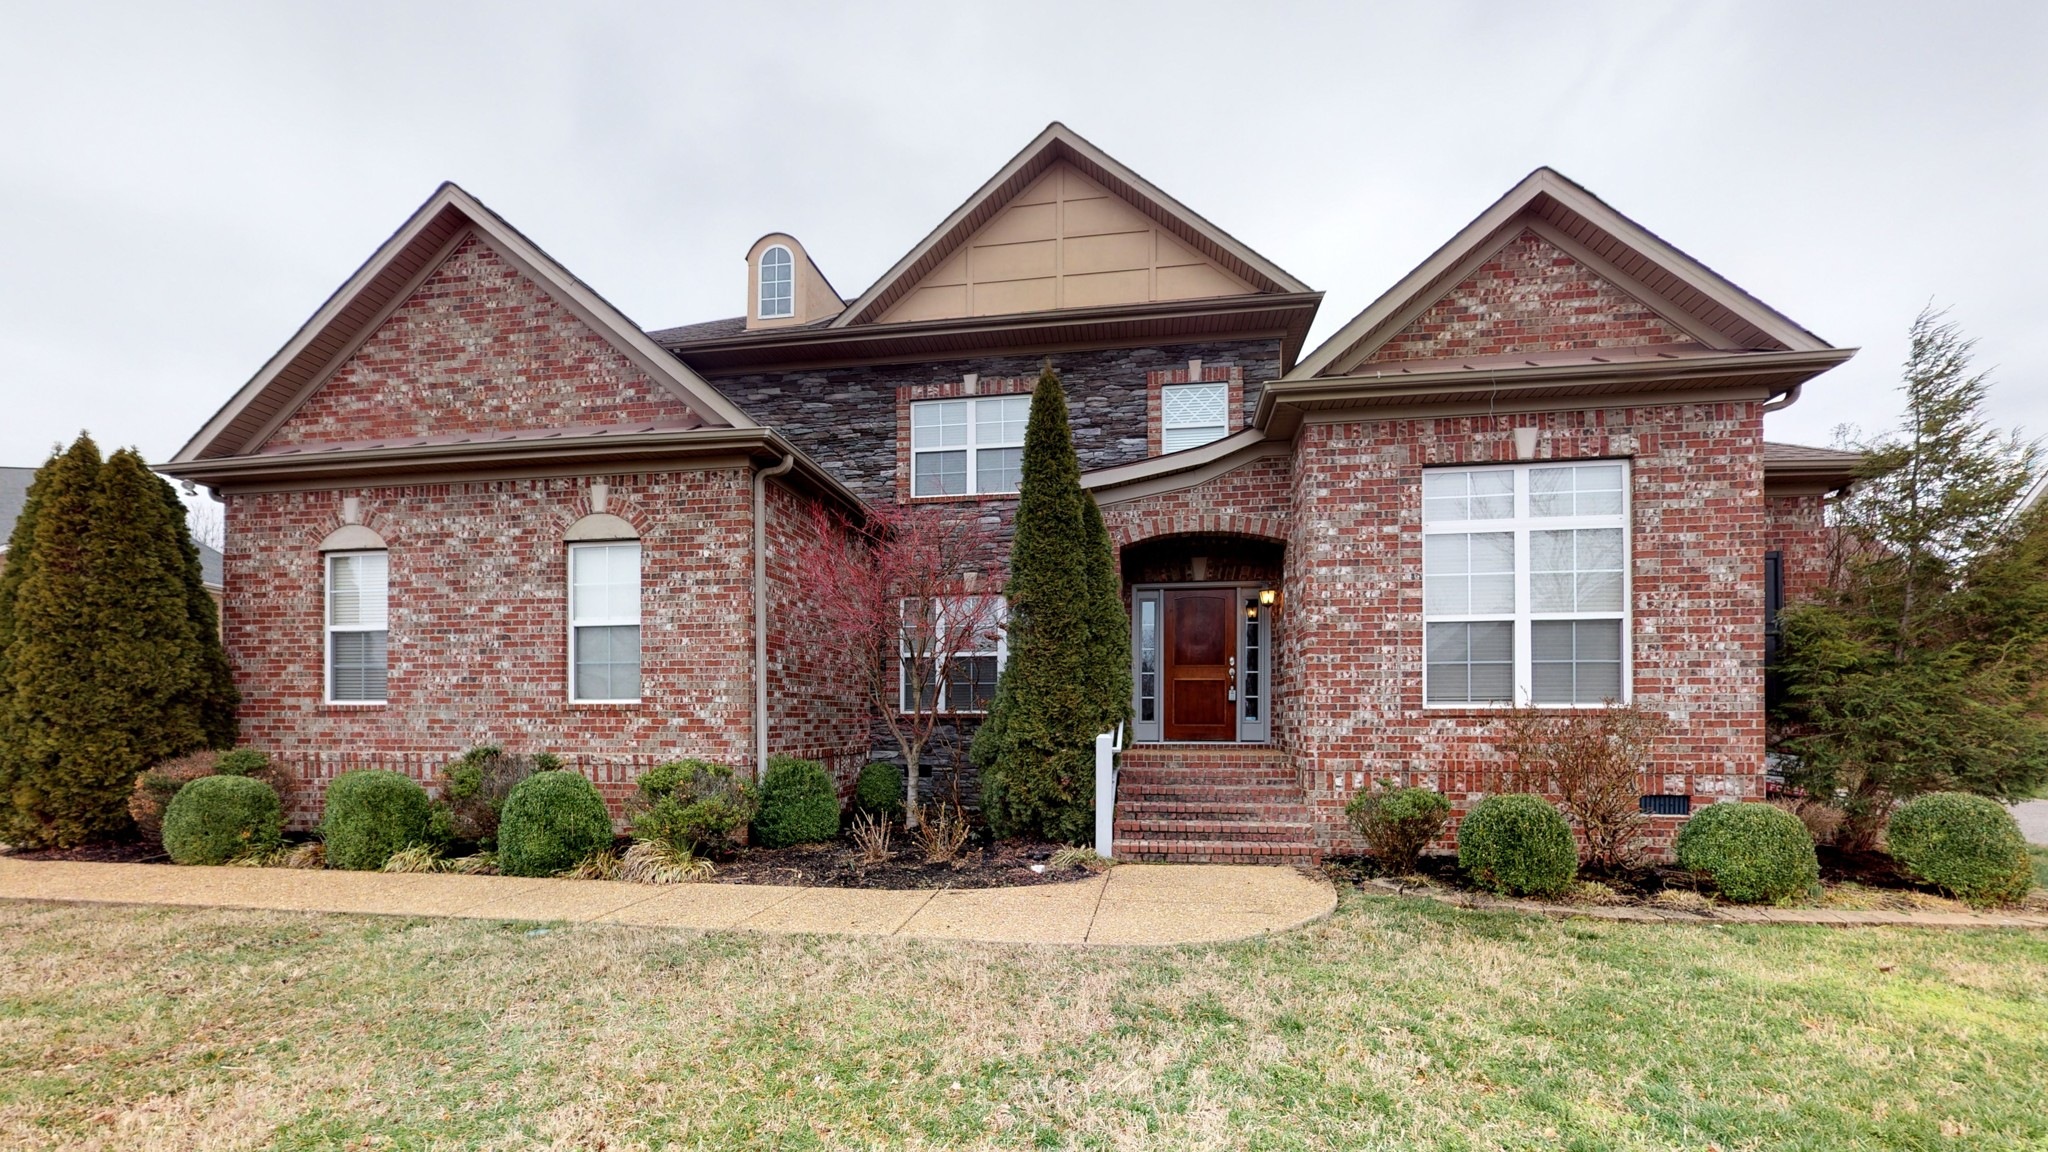 3165 Appian Way, Spring Hill in Williamson County, T County, TN 37174 Home for Sale